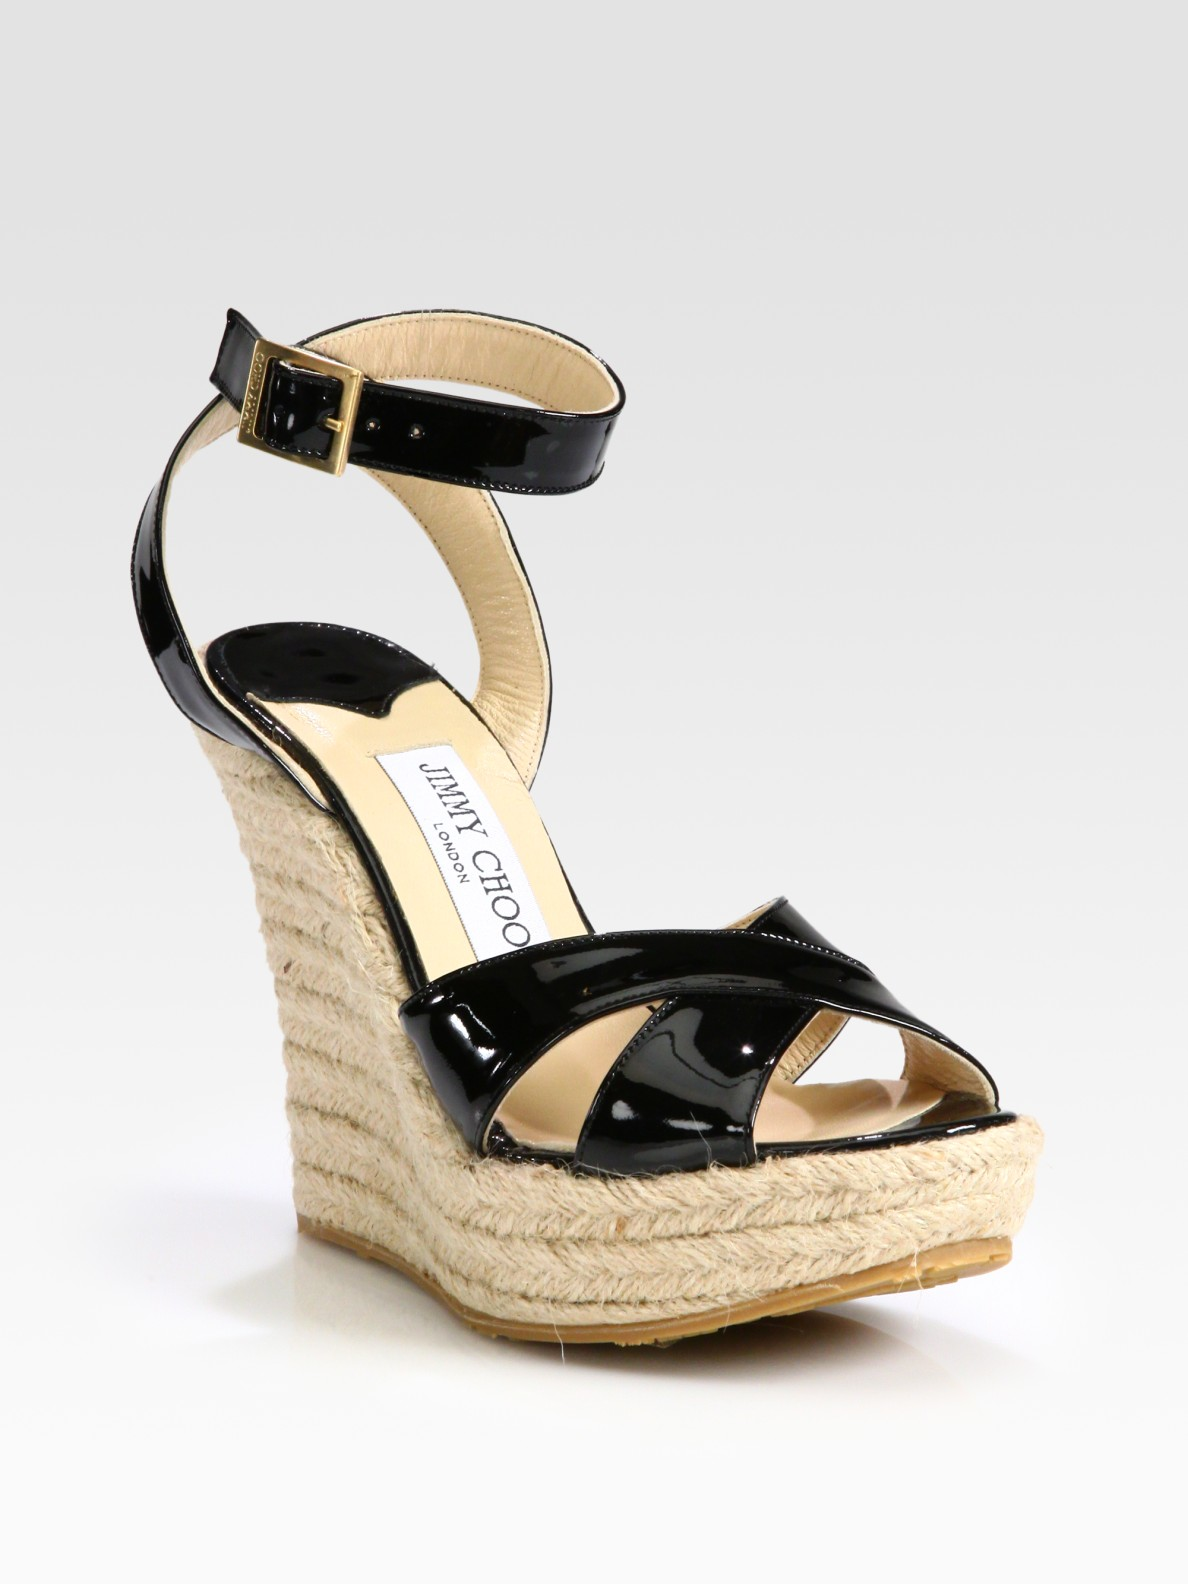 6c72156f80dd ... discount lyst jimmy choo paisley patent leather espadrille wedge  sandals in dedc7 4cd3a